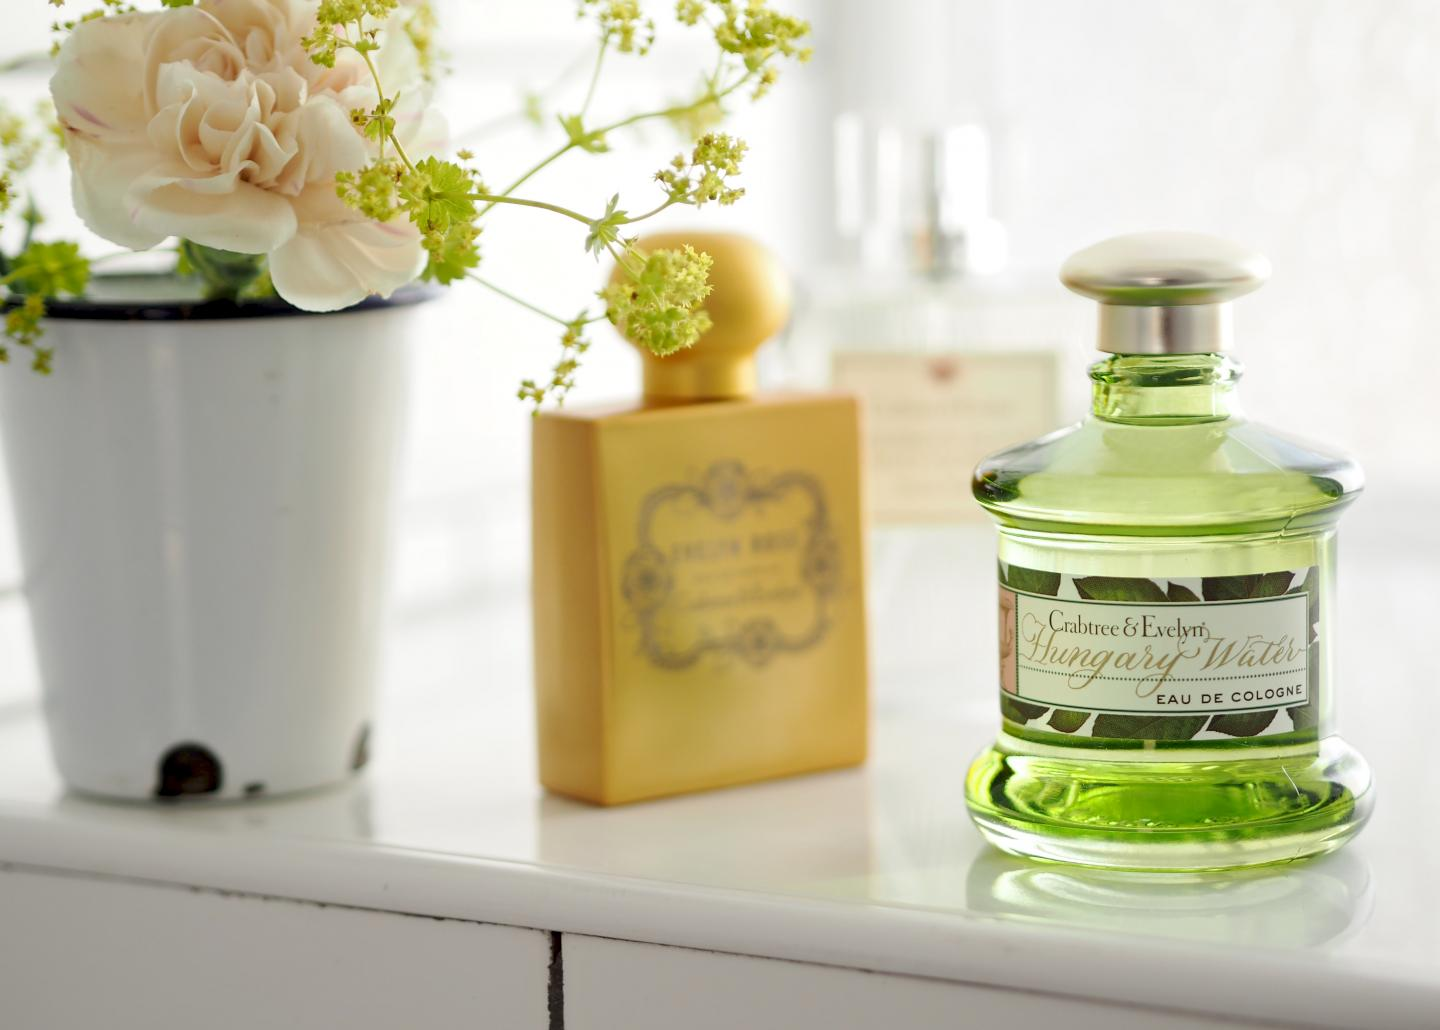 Fragrance My Three Favourite Crabtree Evelyn Perfumes